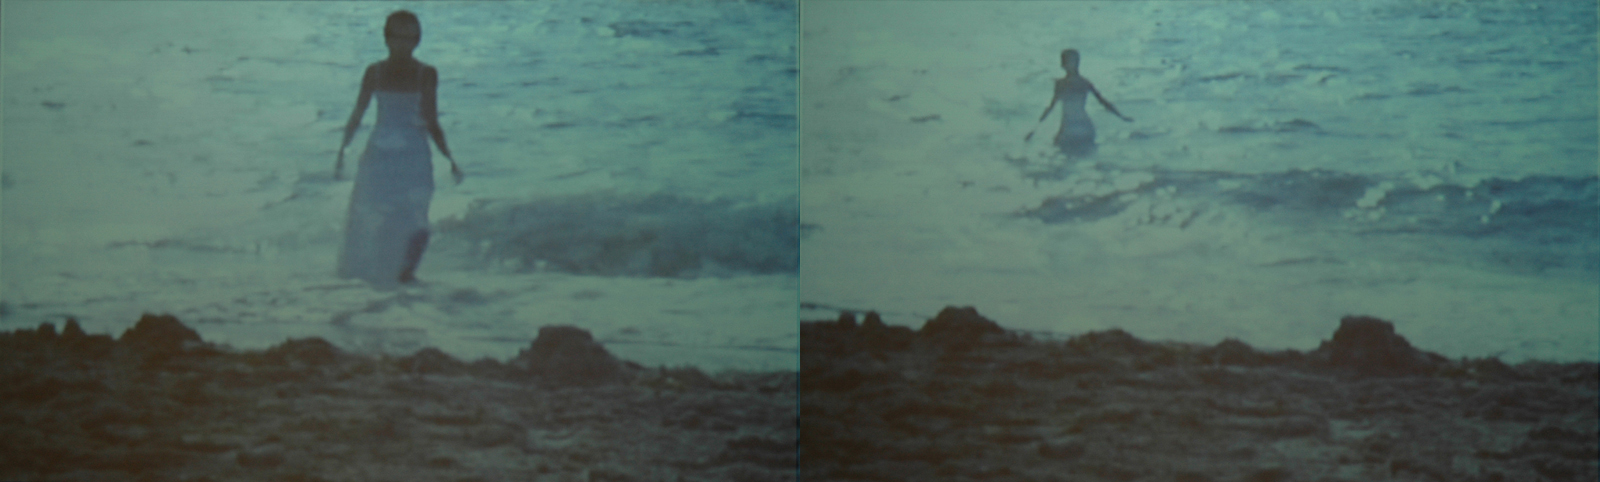 "Two frames of ""Amazing Grace"" depicts a woman in clothing walking into the green ocean"